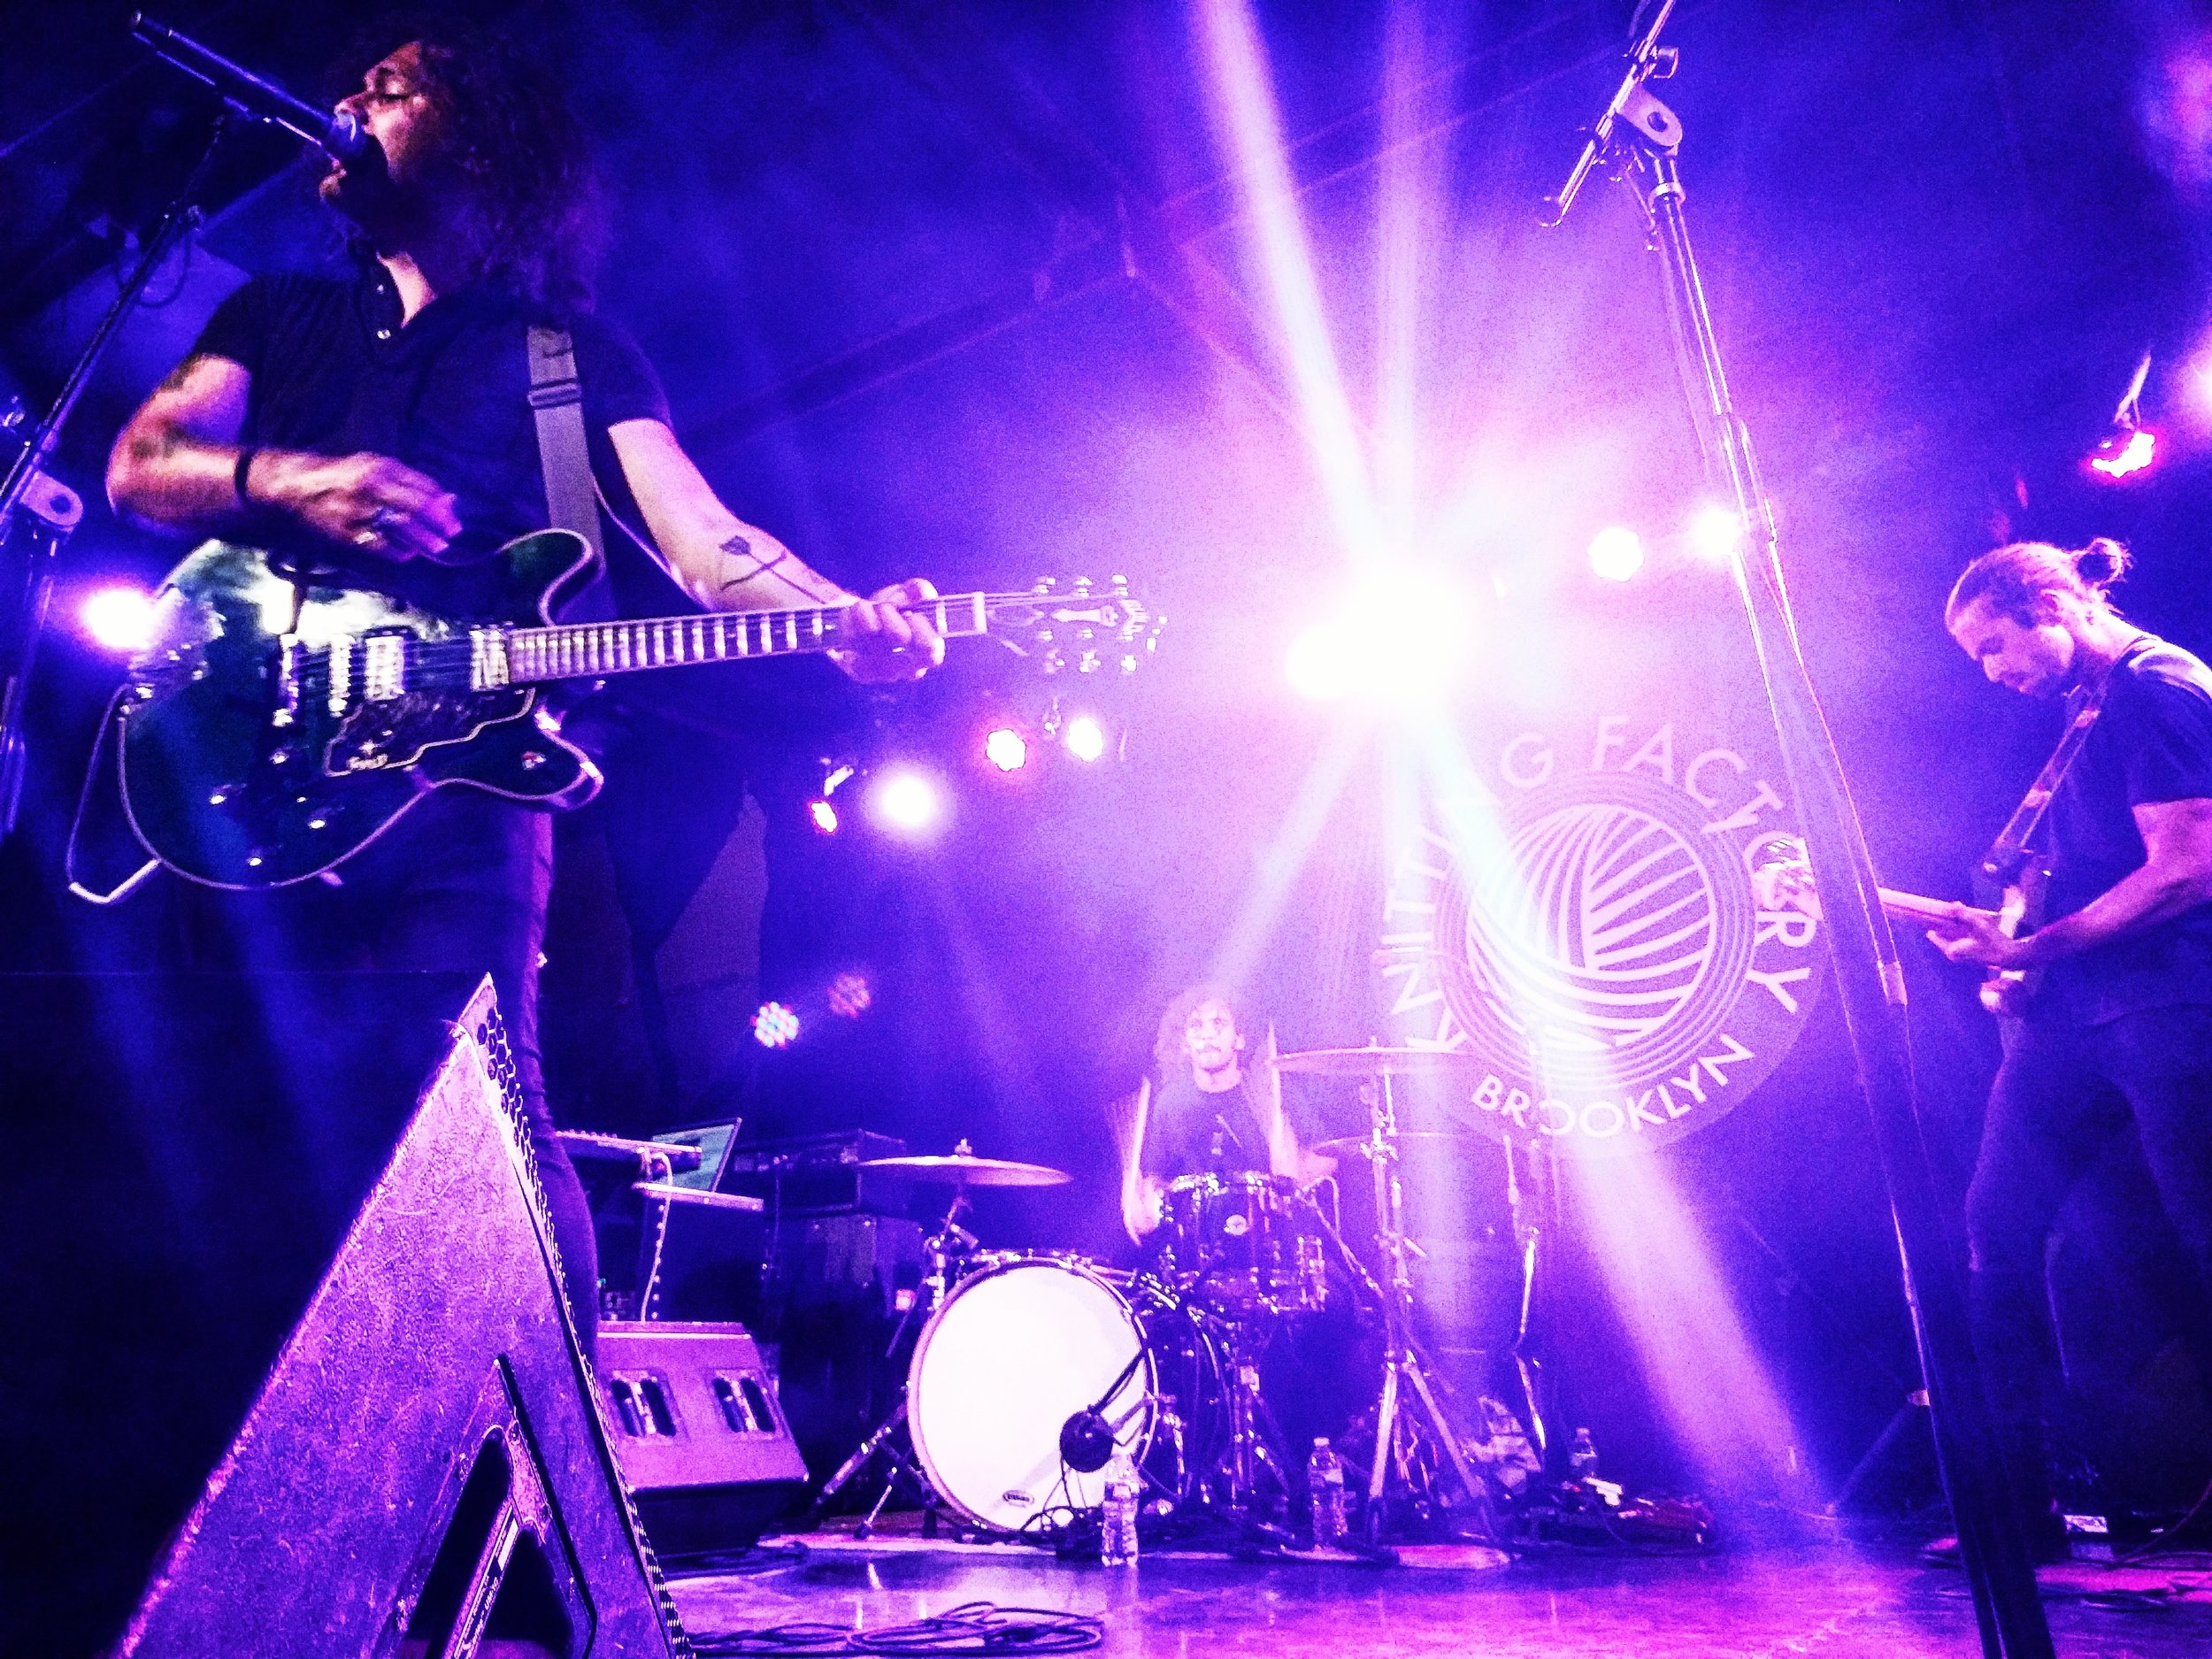 gang of youths   the knitting factory, brooklyn   6.12.16   @thefaakehipster